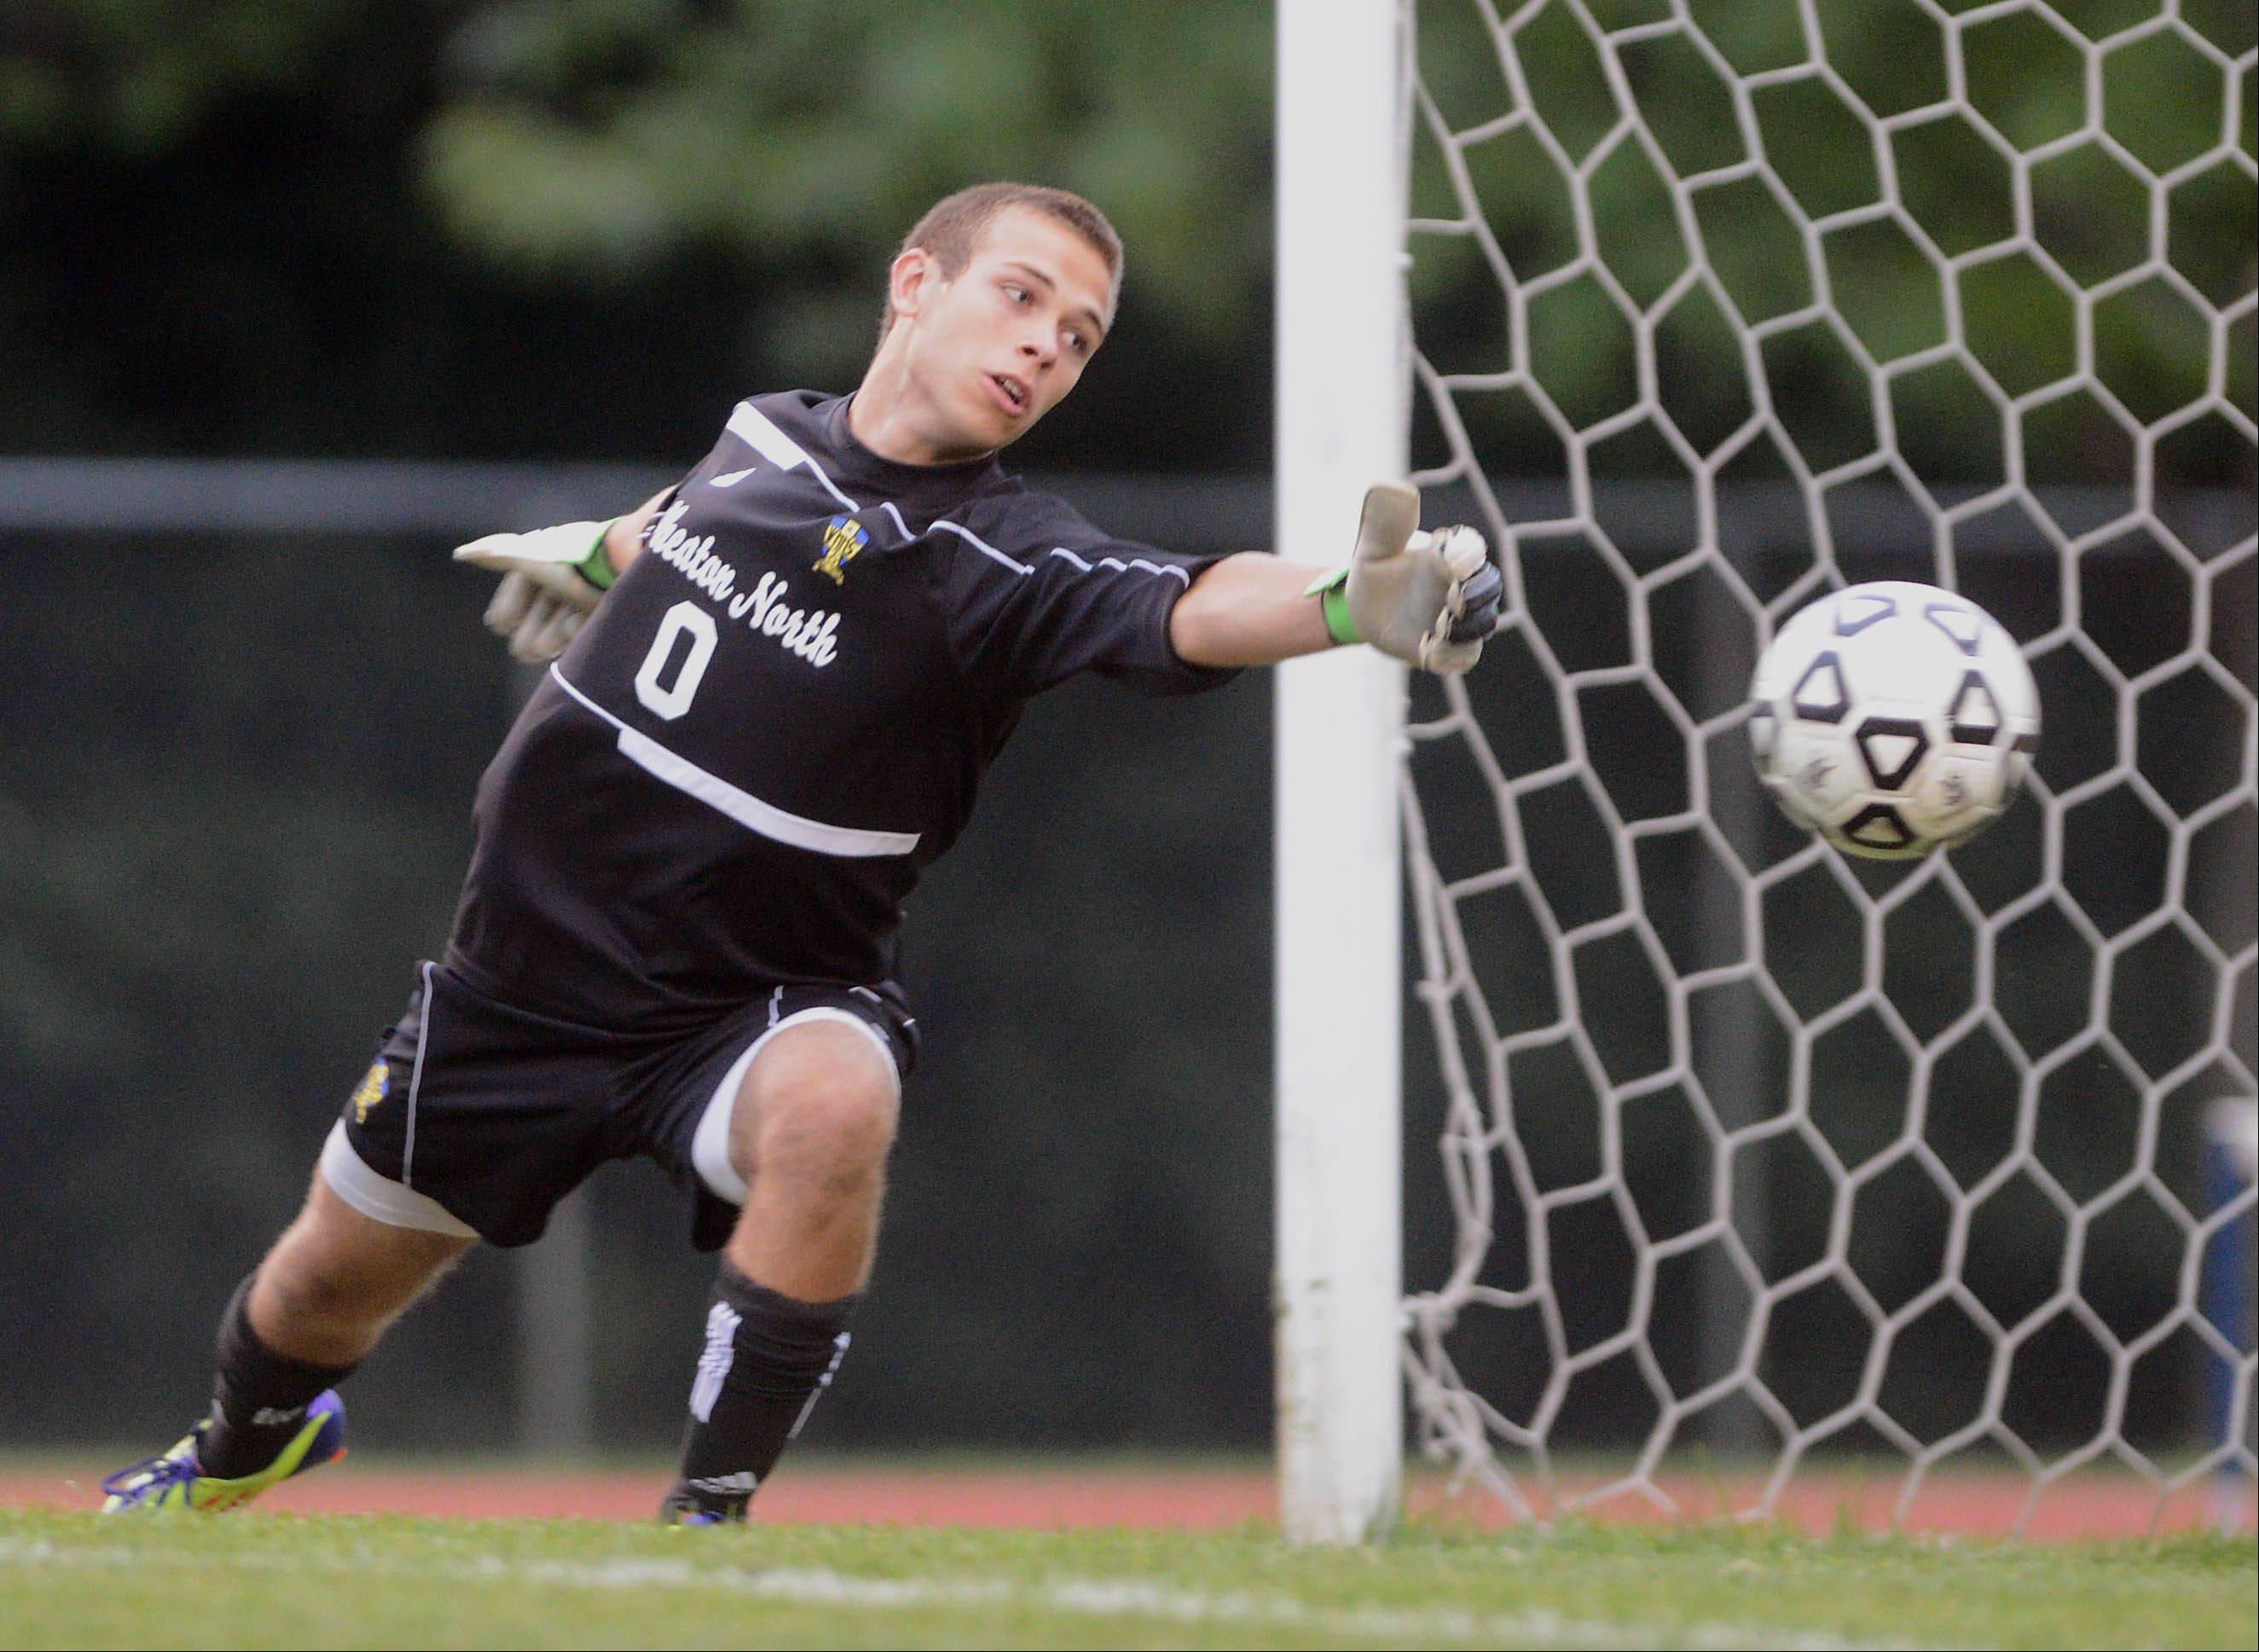 Wheaton North's Alex Jiskra reaches for a shot to the net during Tuesday's soccer game against Lake Park.